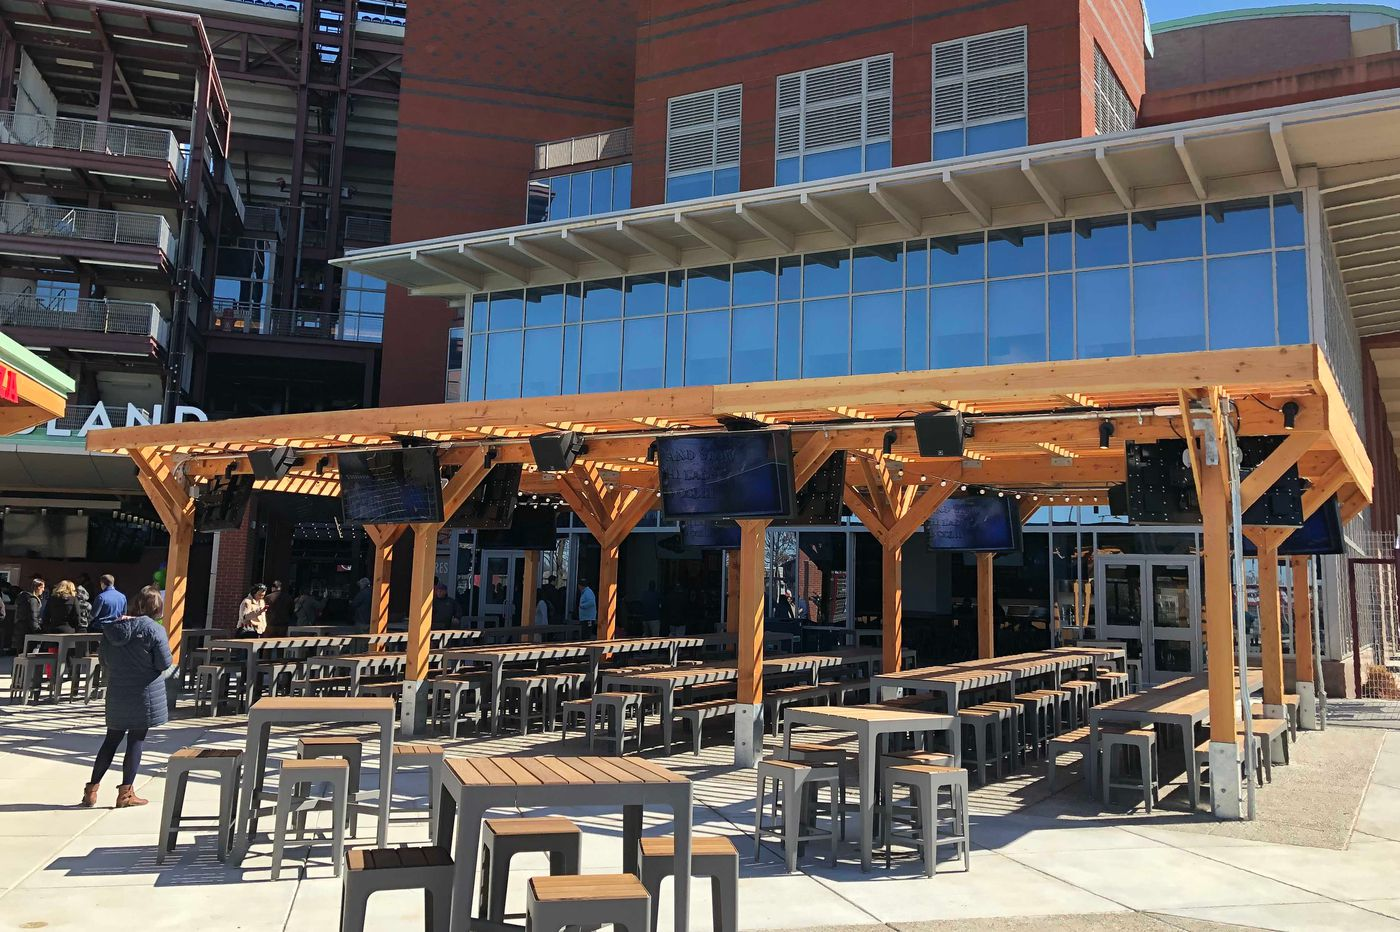 Inside Citizens Bank Park for 2019: New food options, outdoor beer garden and more